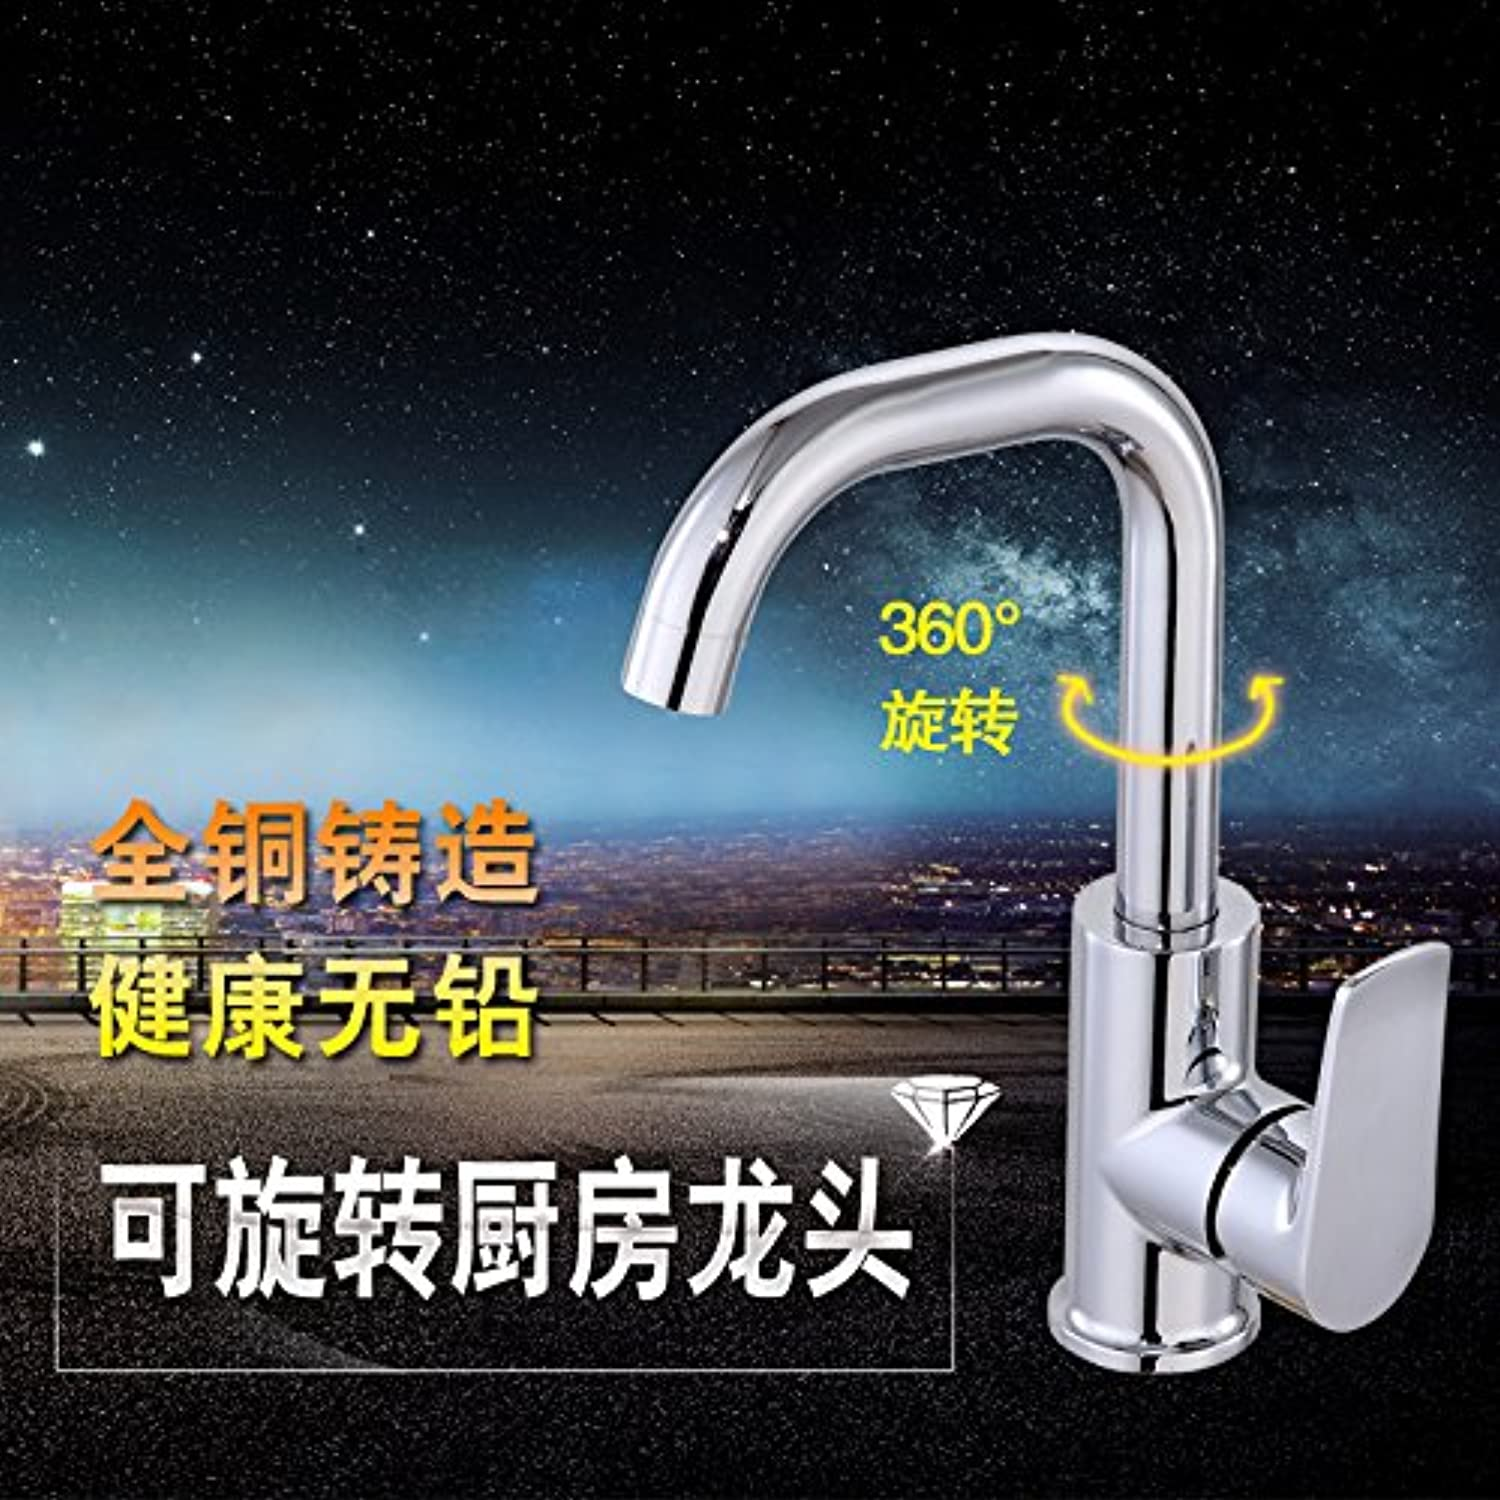 Hlluya Professional Sink Mixer Tap Kitchen Faucet The Kitchen cold water kitchen faucet and cold water faucet 360 million to the copper wash basin, dish dish washing basin with 80 cm water inlet pipe